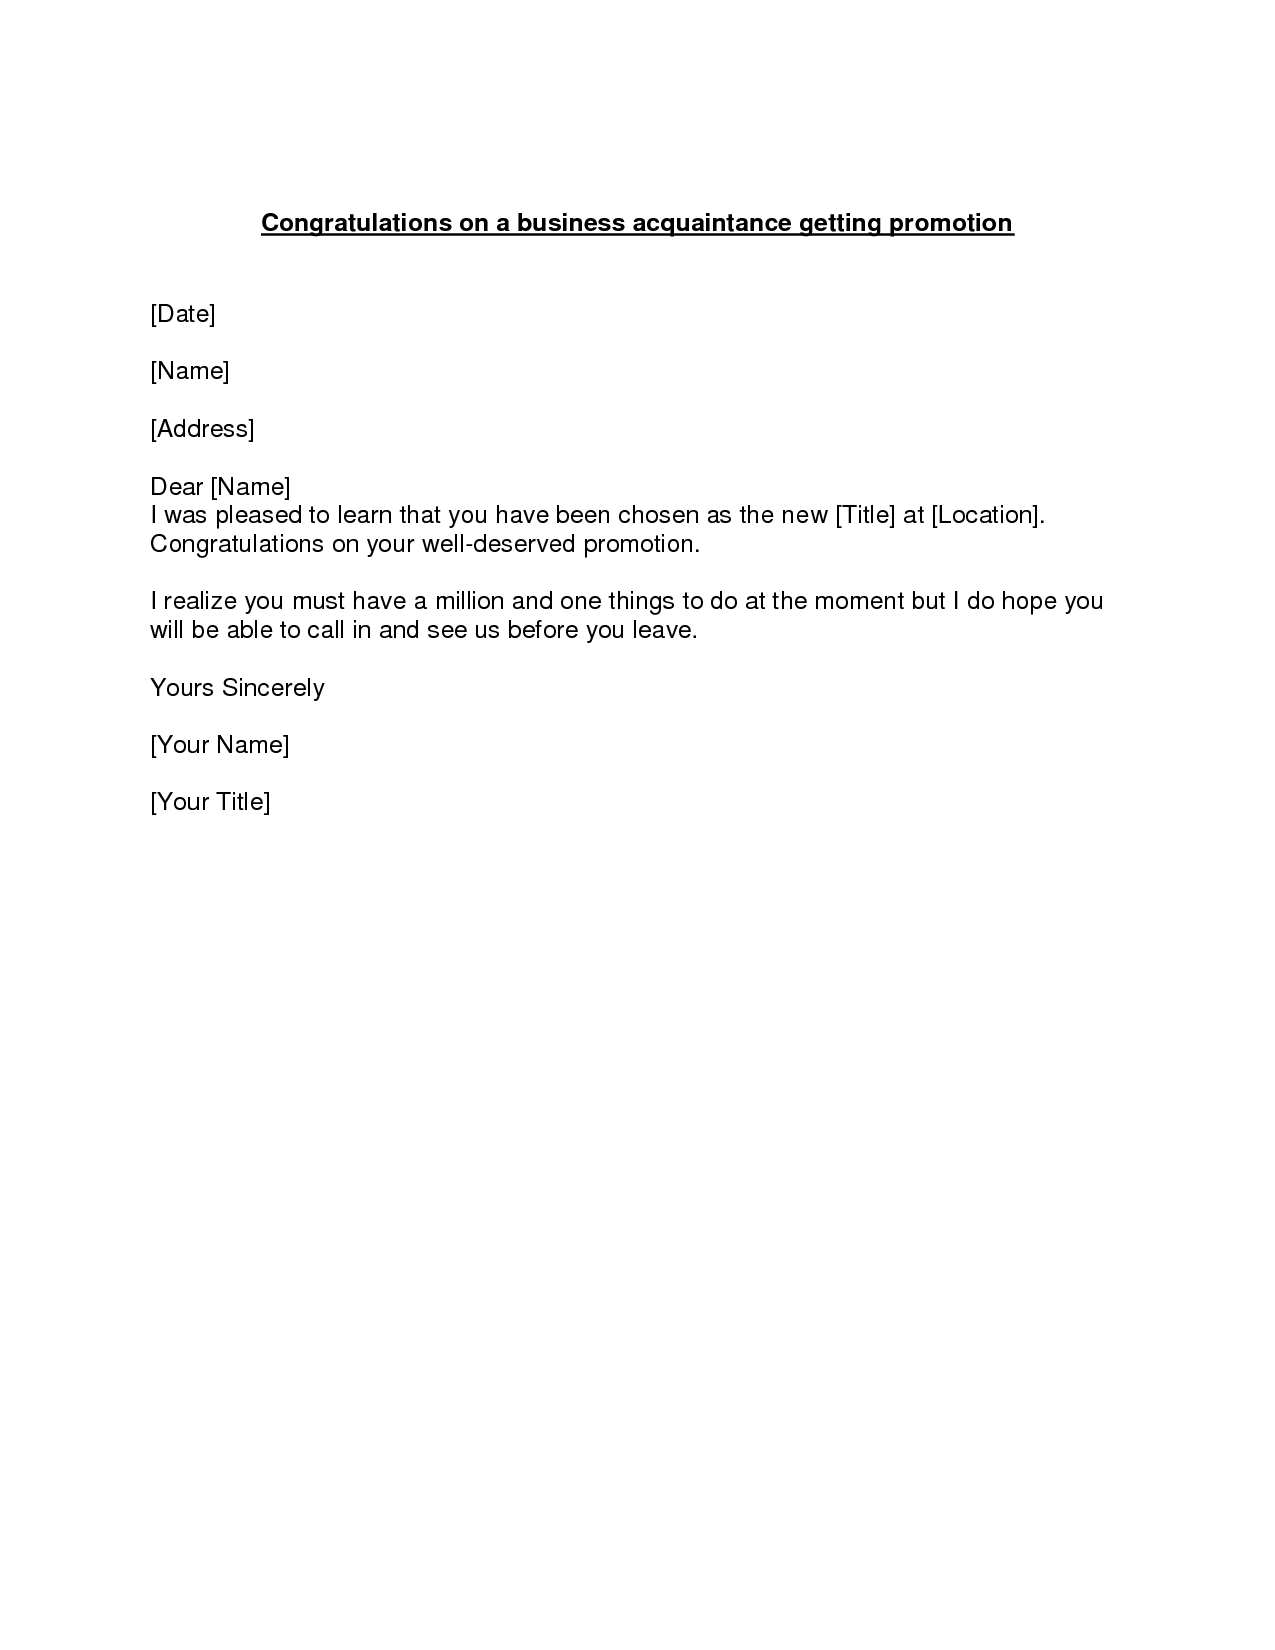 Promotion congratulations letter example of a congratulations promotion congratulations letter example of a congratulations letter to send to a business associate who spiritdancerdesigns Images